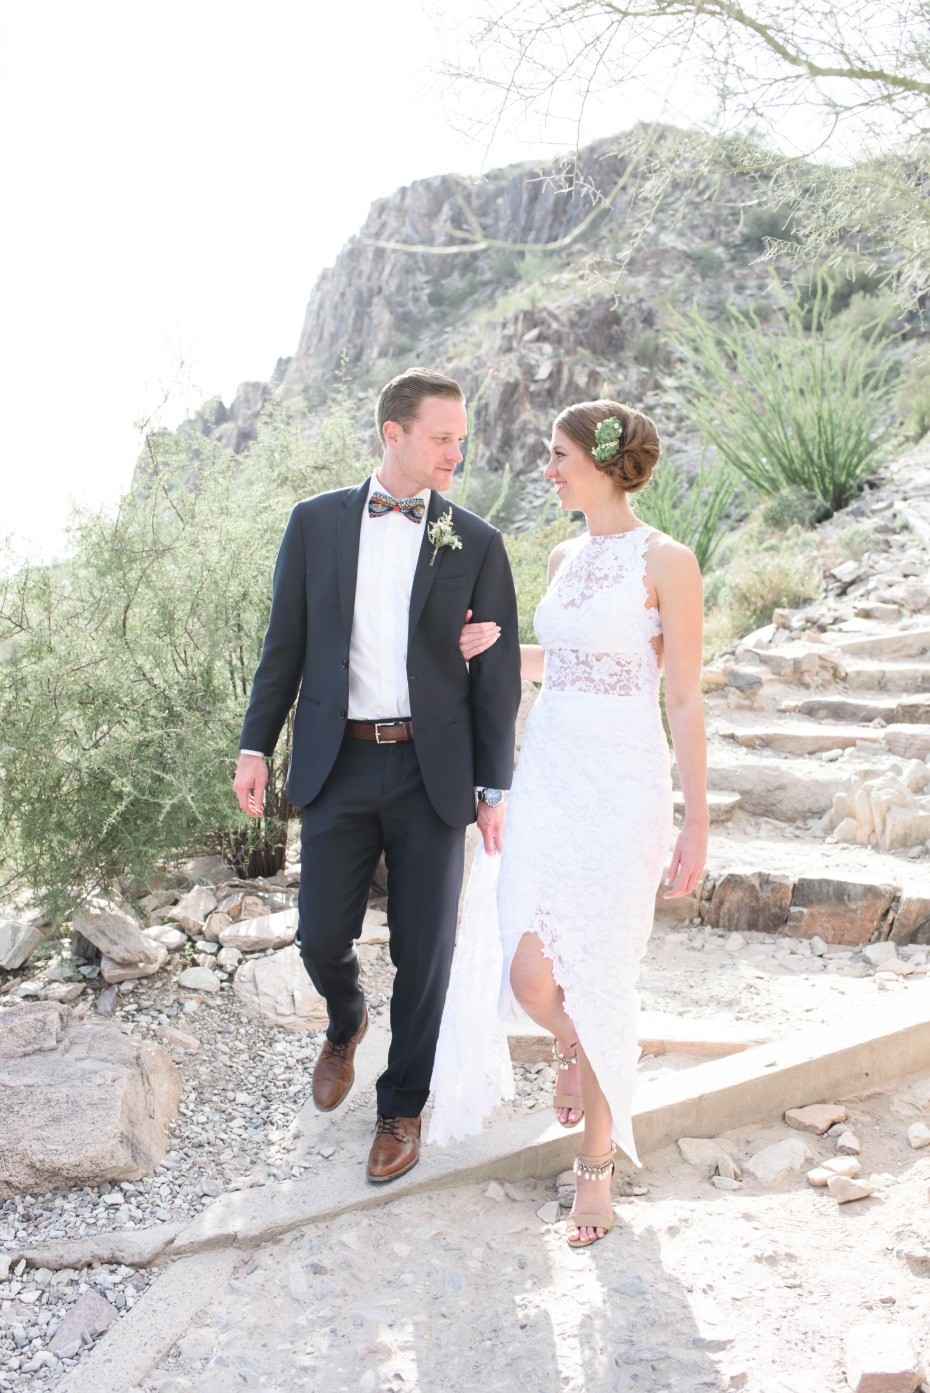 Gorgeous desert wedding in Arizona